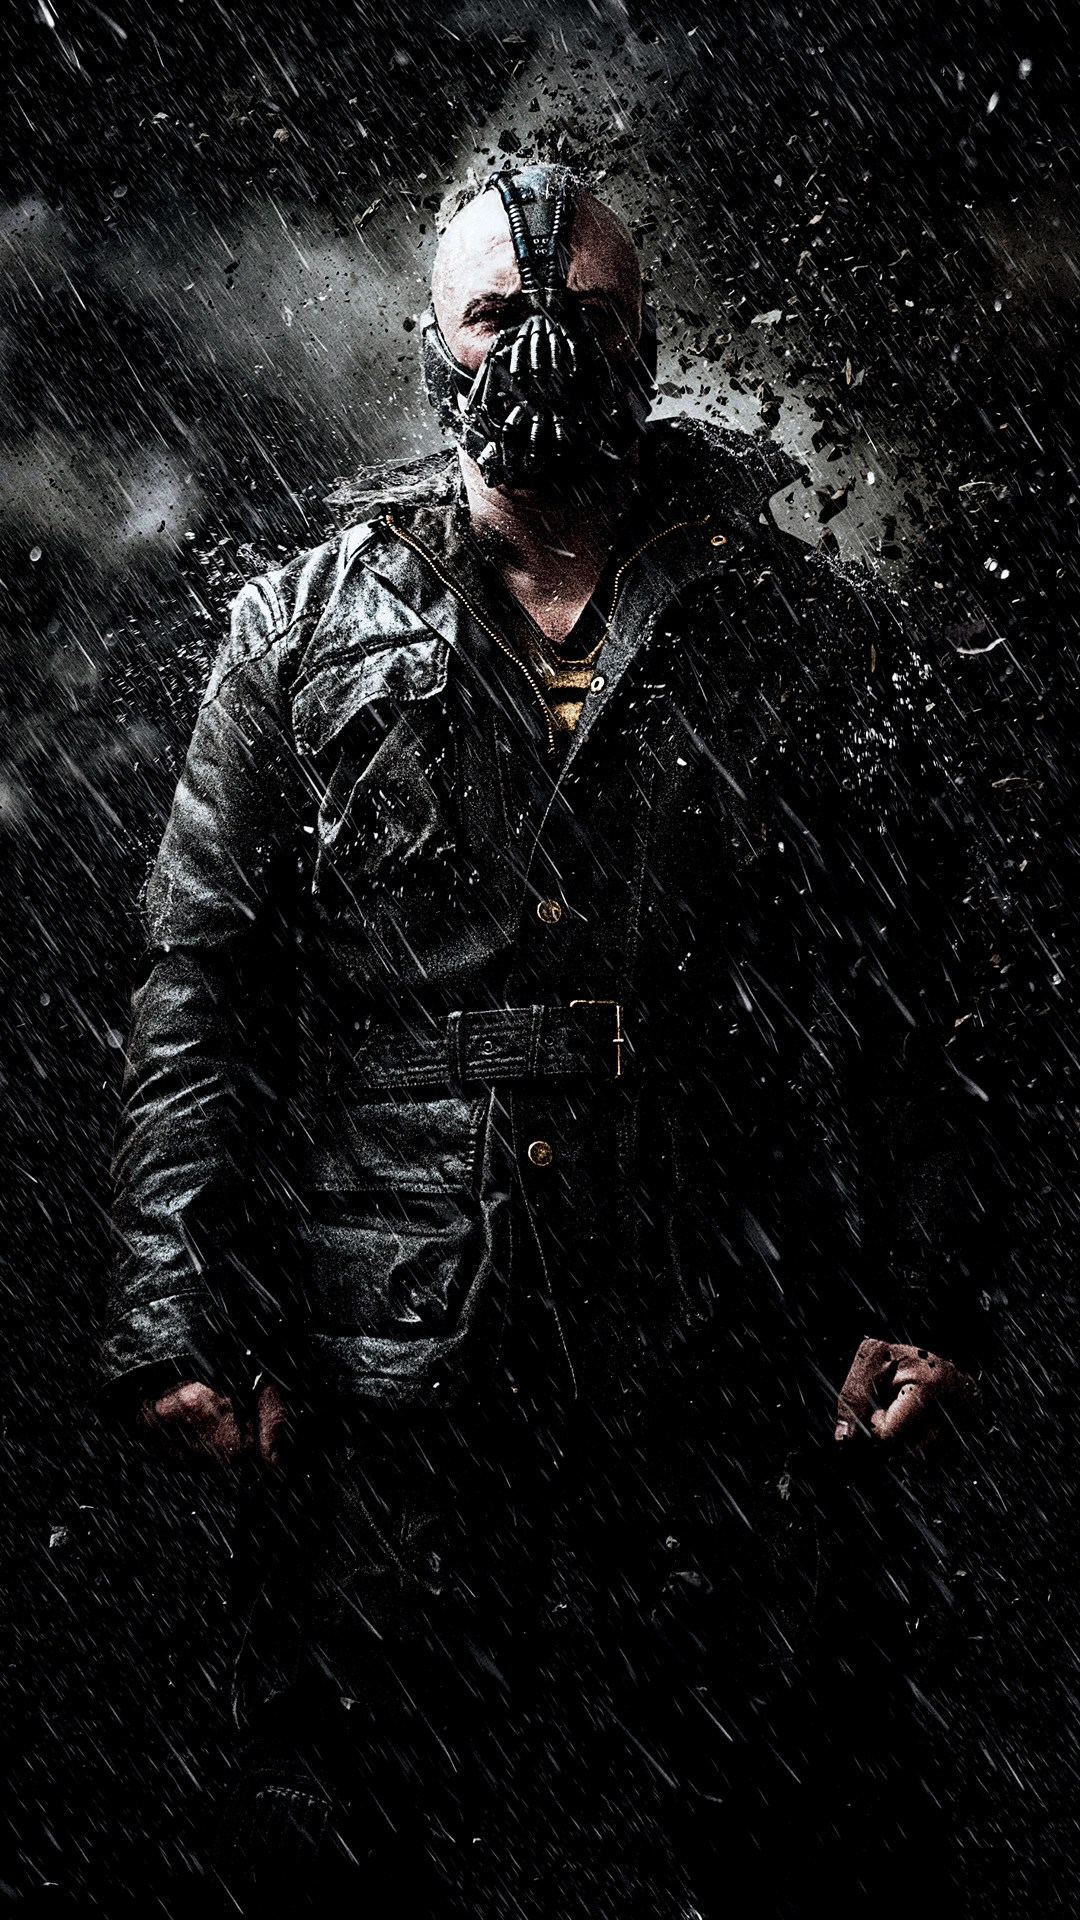 If You Are A Batman Fan Then You Will Love This Bane - Batman The Dark Knight Rises Textless Poster , HD Wallpaper & Backgrounds